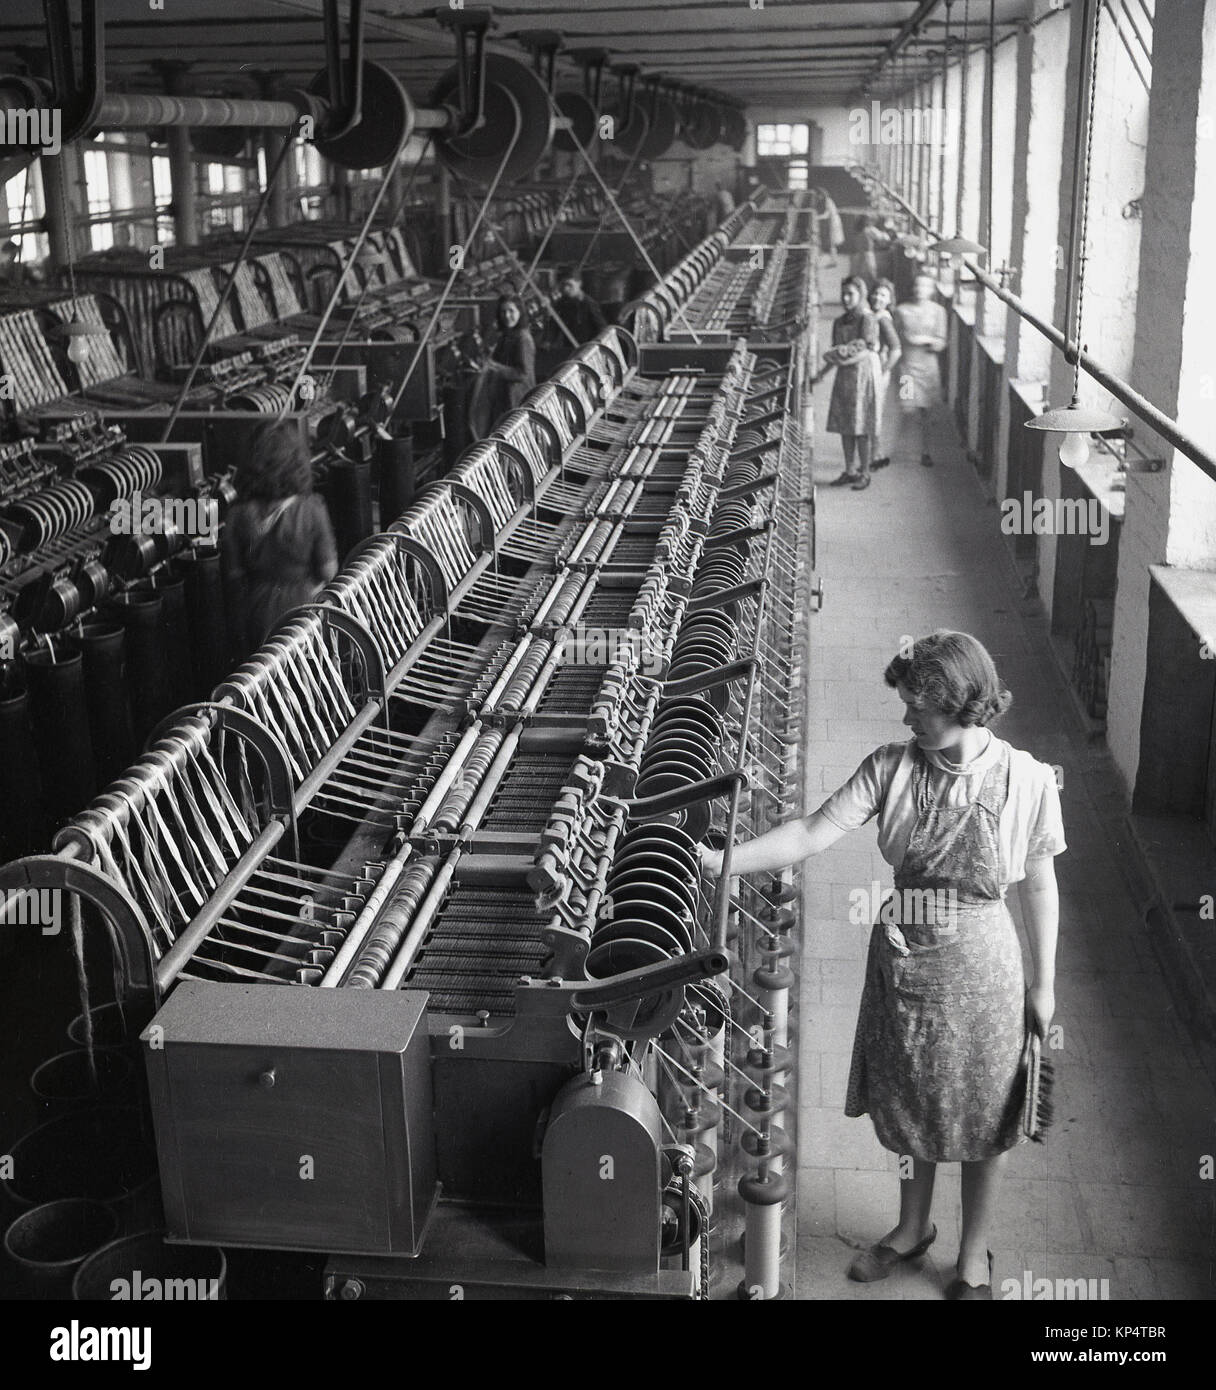 1950s, historical, picture shows rows of mechanised weaving machines, the female operatives and one of the female - Stock Image